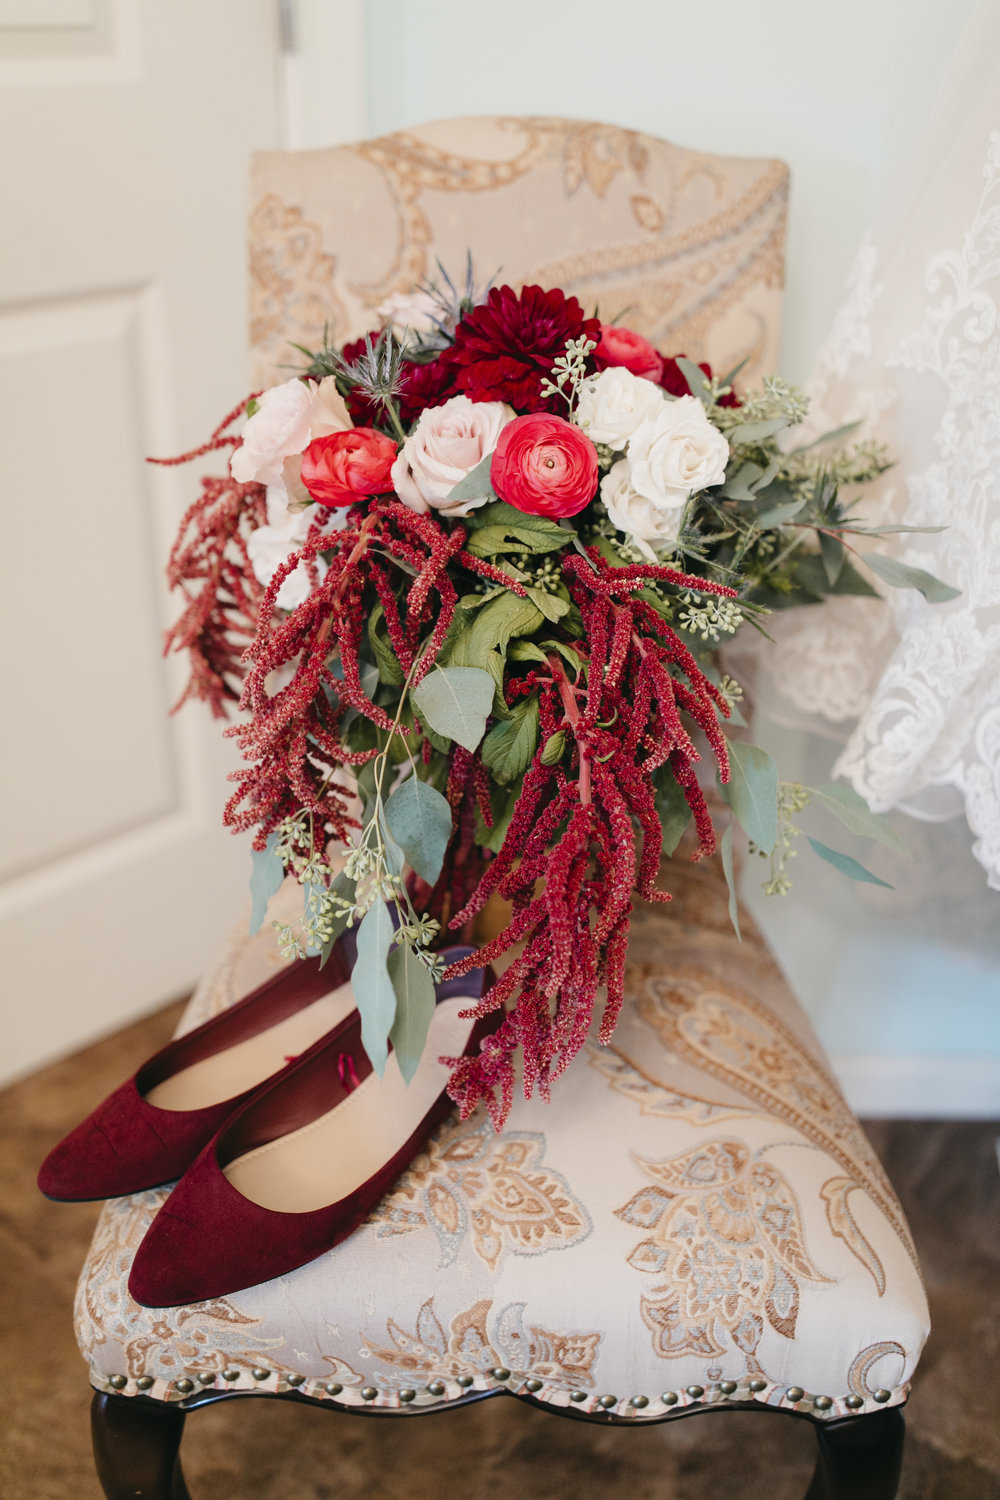 The season and rich colors were also referenced in the beautiful floral arrangements, which included seeded eucalyptus, ranunculus, carnations, roses, and thistle. -